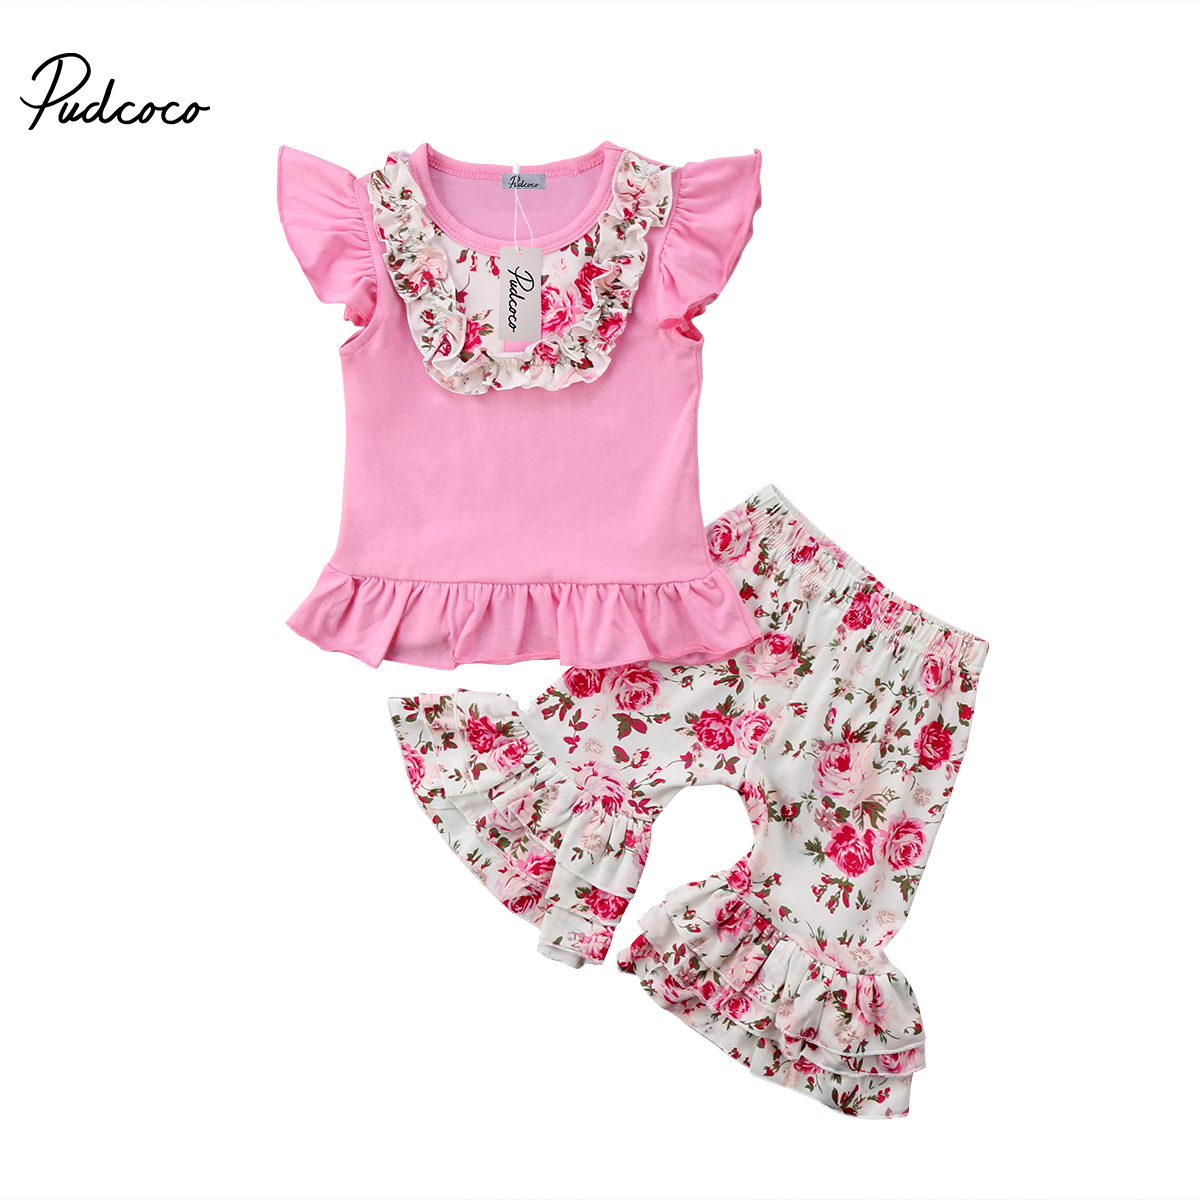 Floral Toddler Kid Baby Girl Clothes Sets T-shirt Top Short Sleeve Ruffle Pants Cotton Cute 2pcs Clothing Set Girls 2-7T